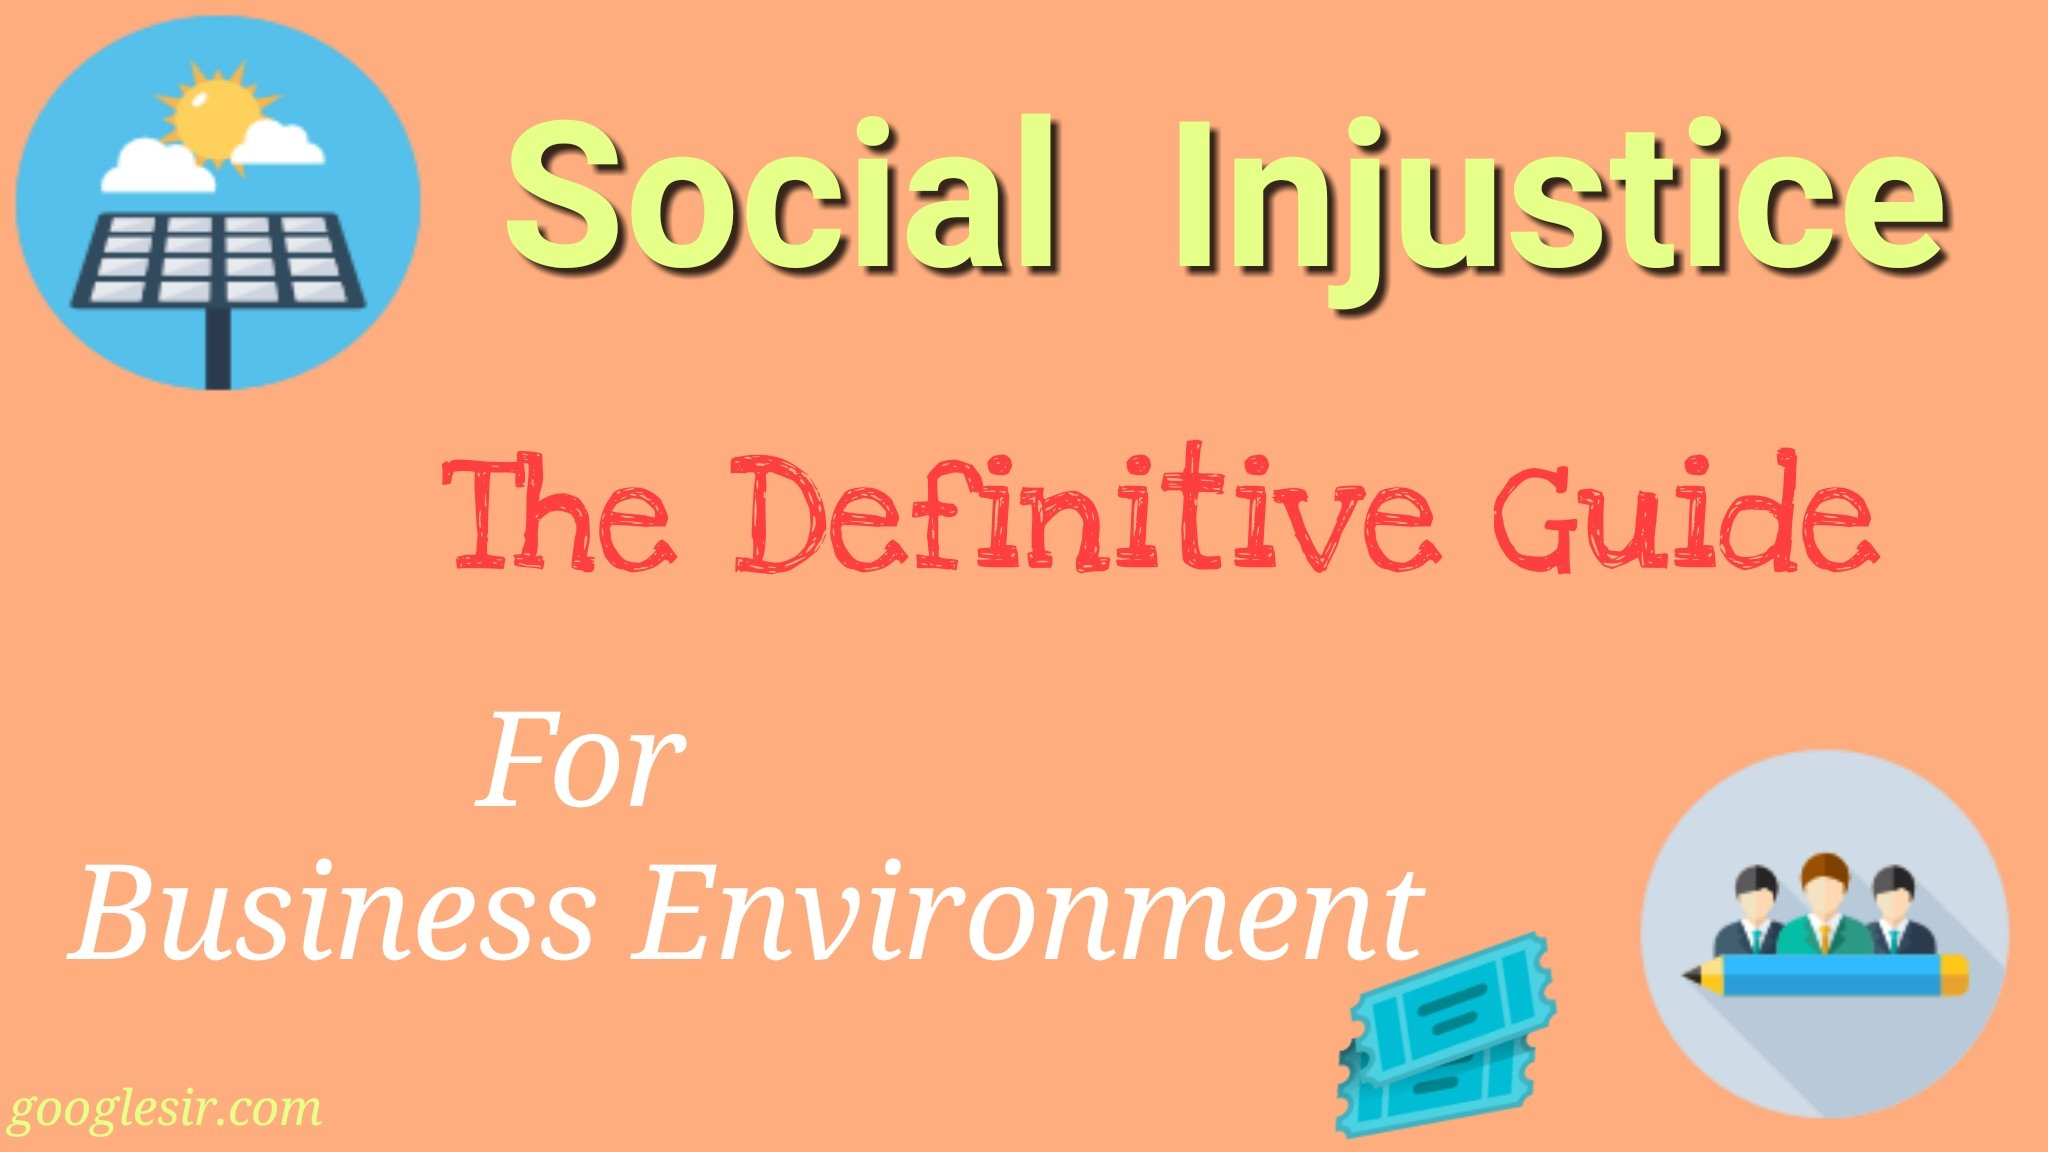 social injustice in business environment (9 indicators) - googlesir